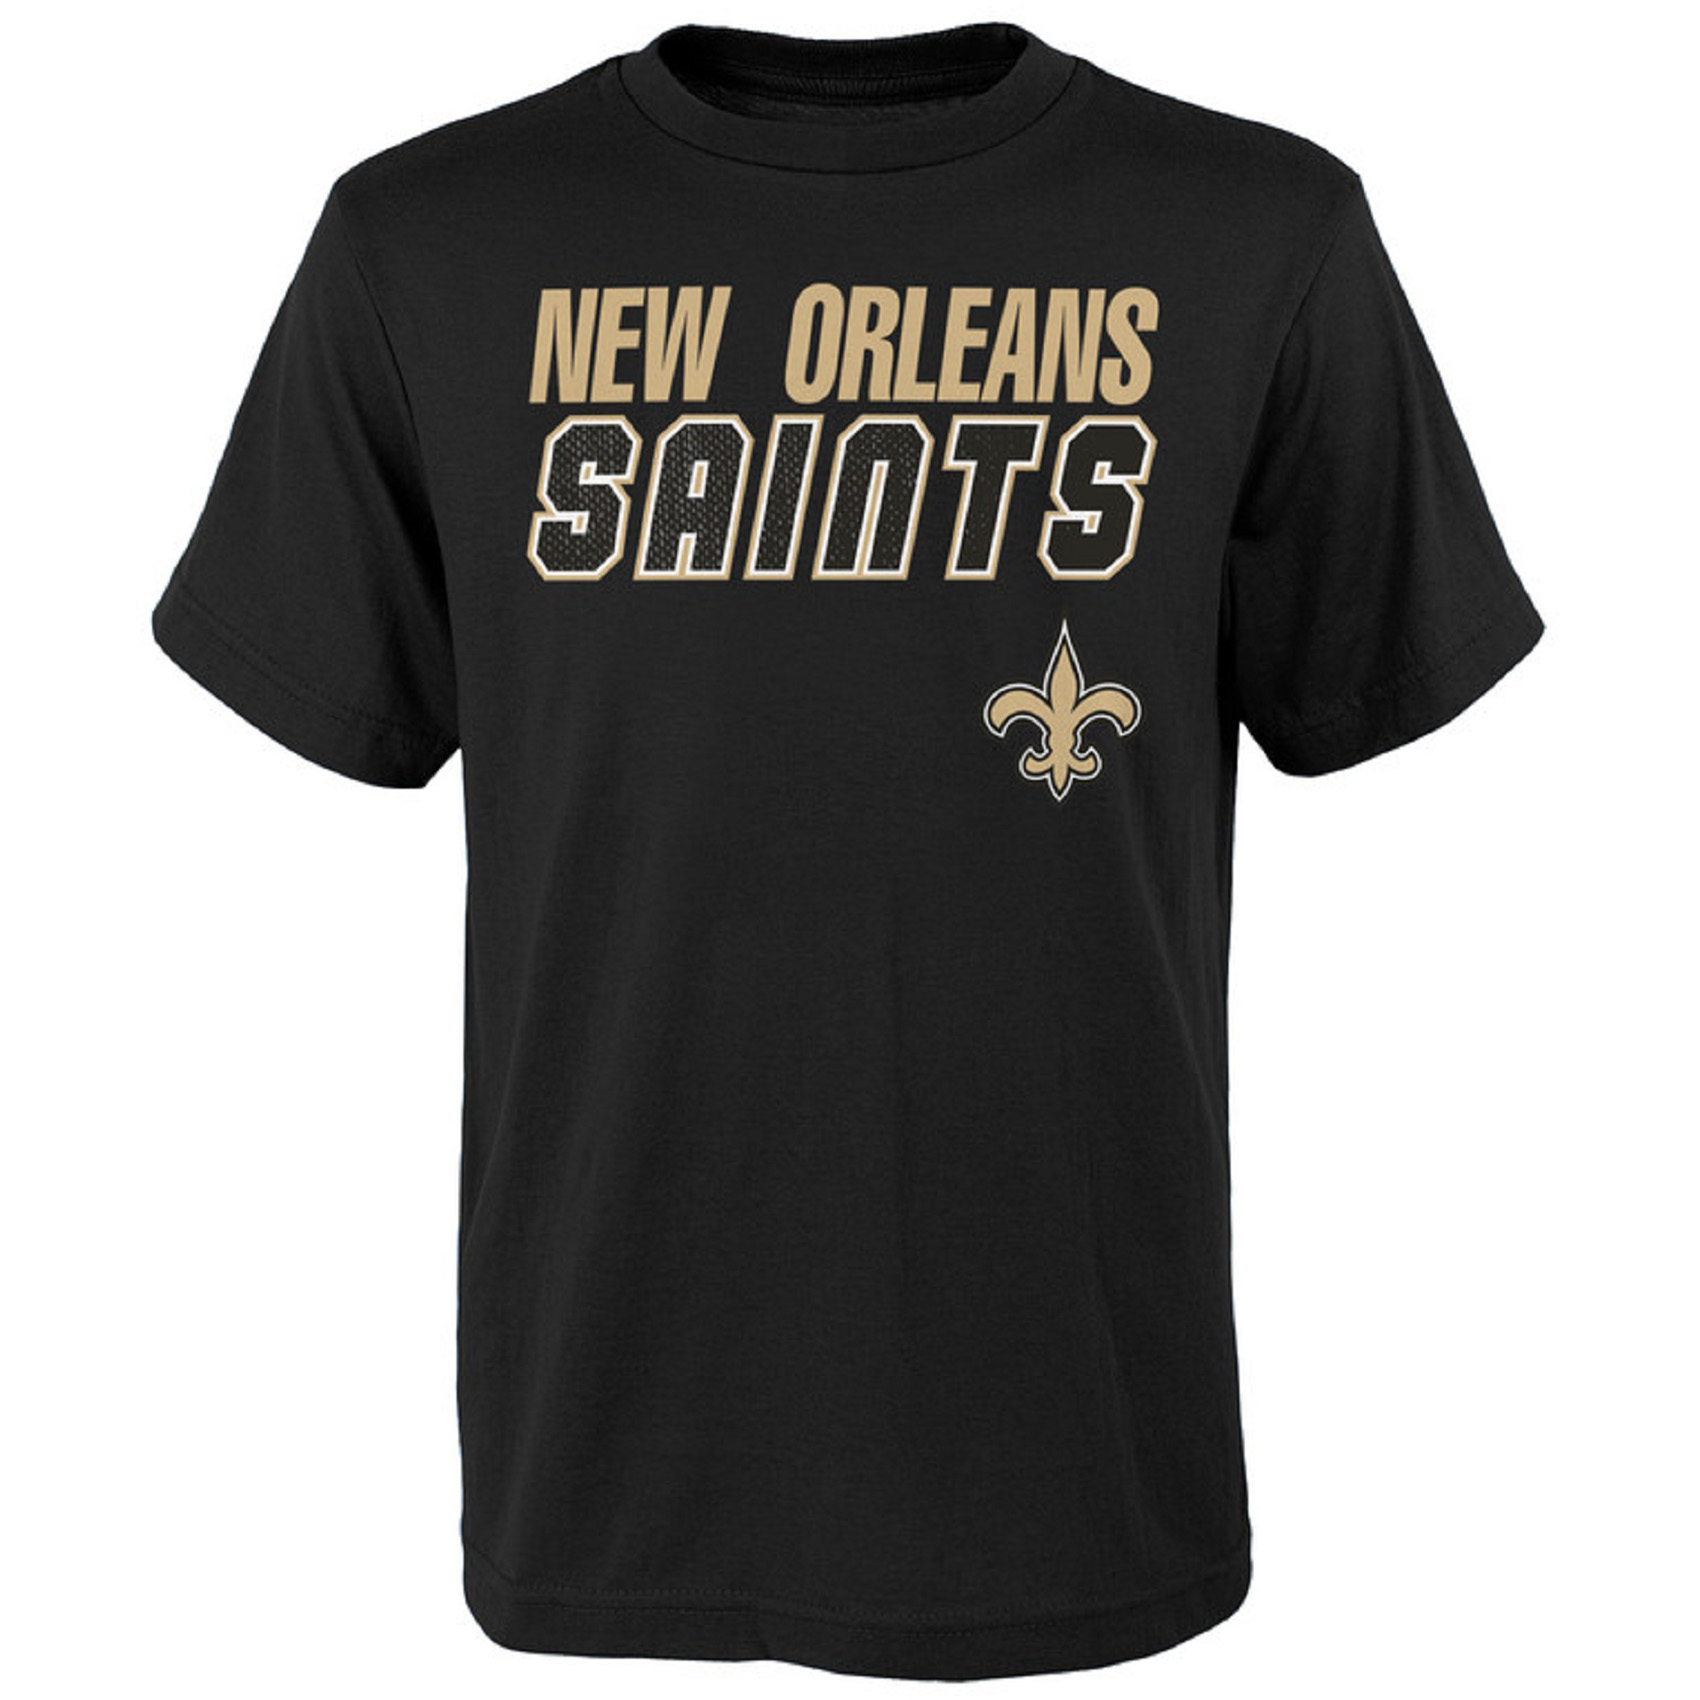 Youth Charcoal New Orleans Saints Outline T-Shirt